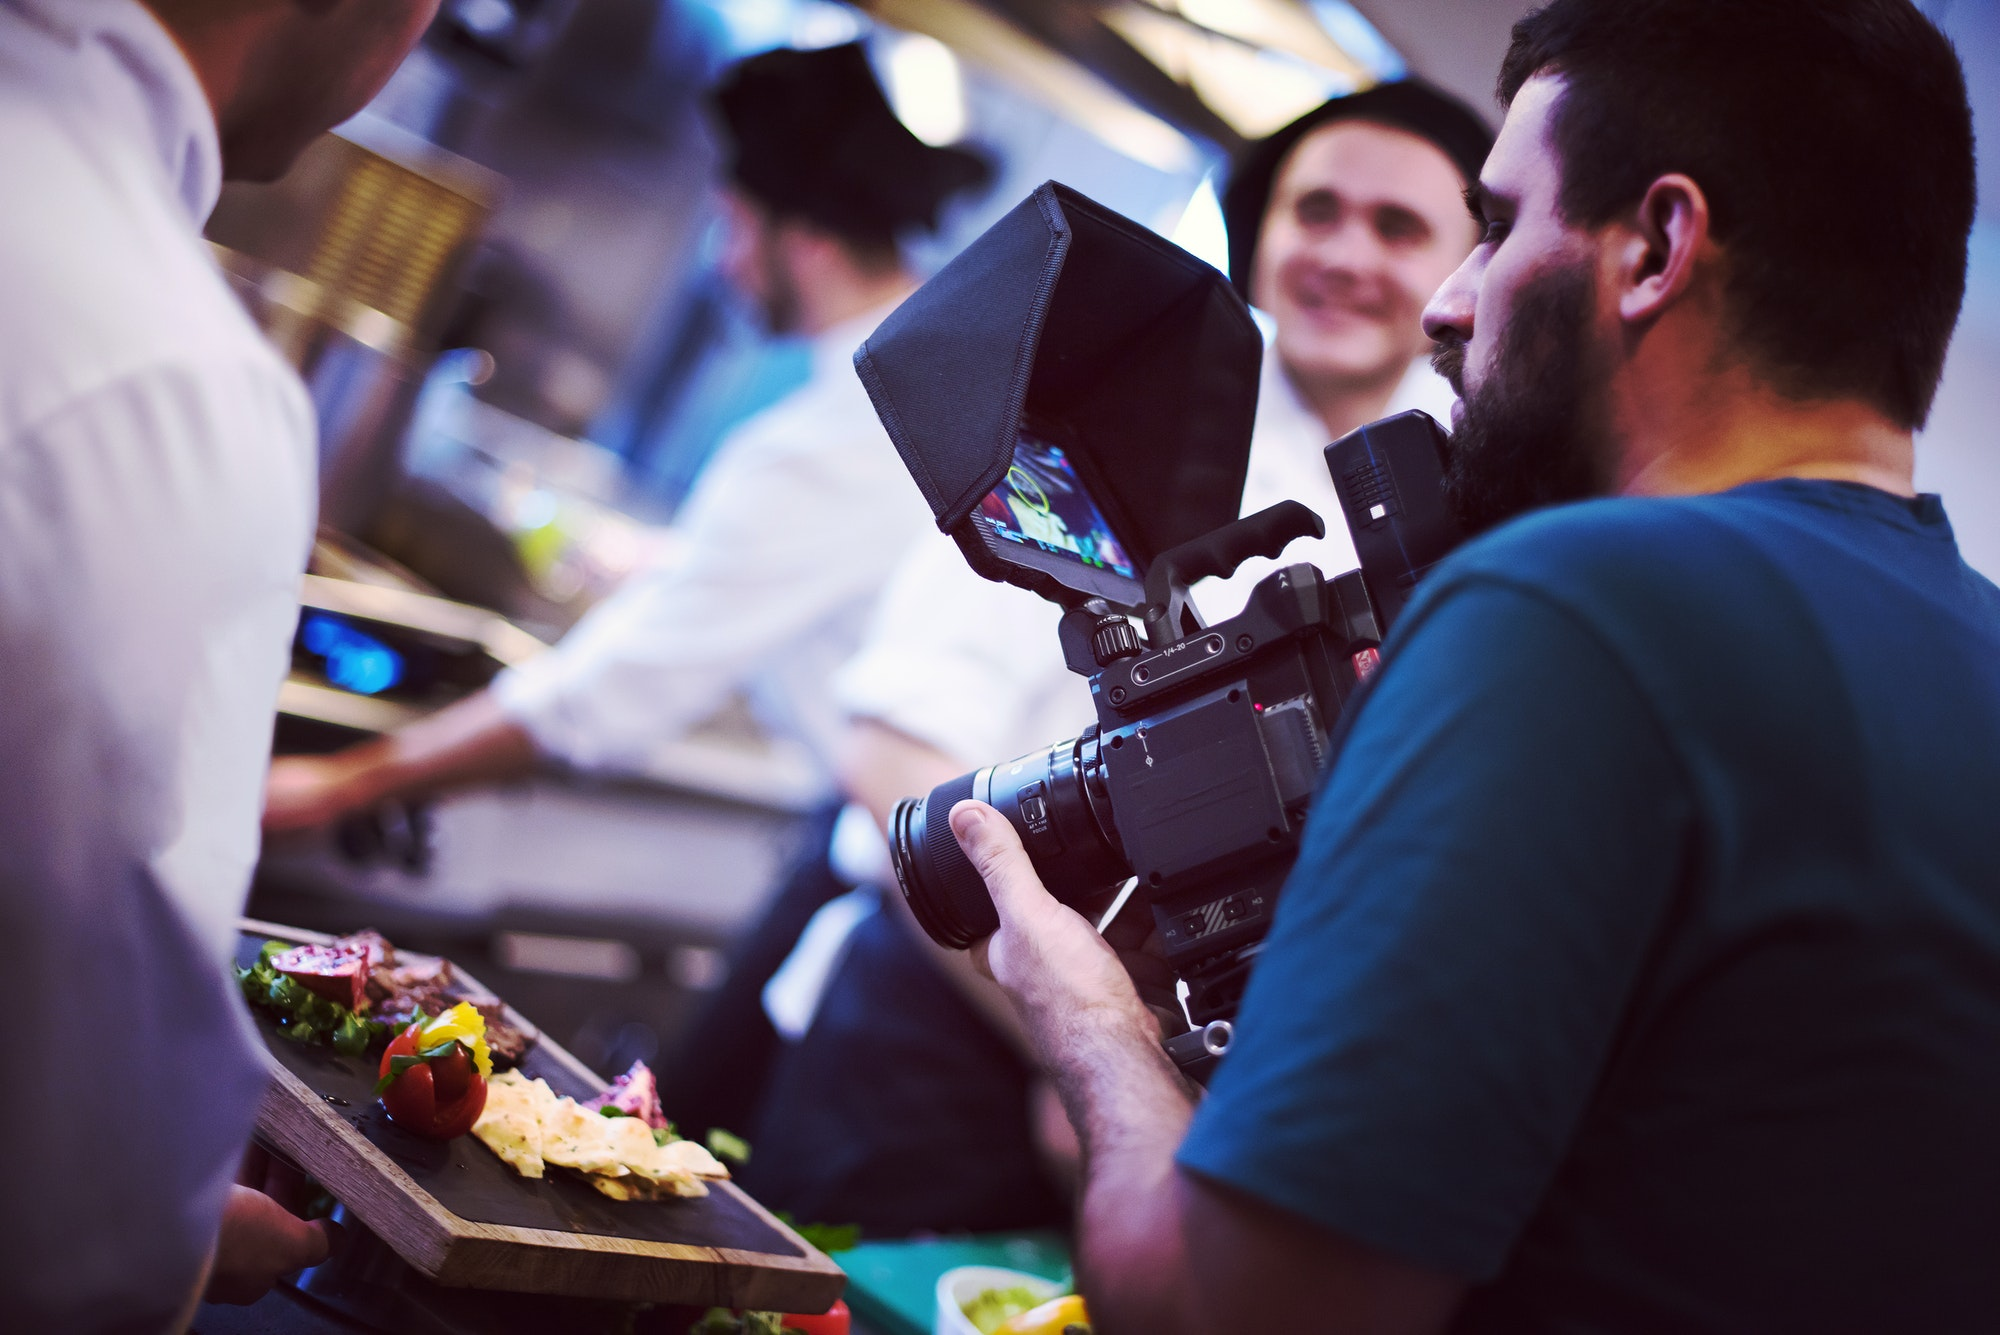 Gladlii videographer recording while a cook and chef prepare meal